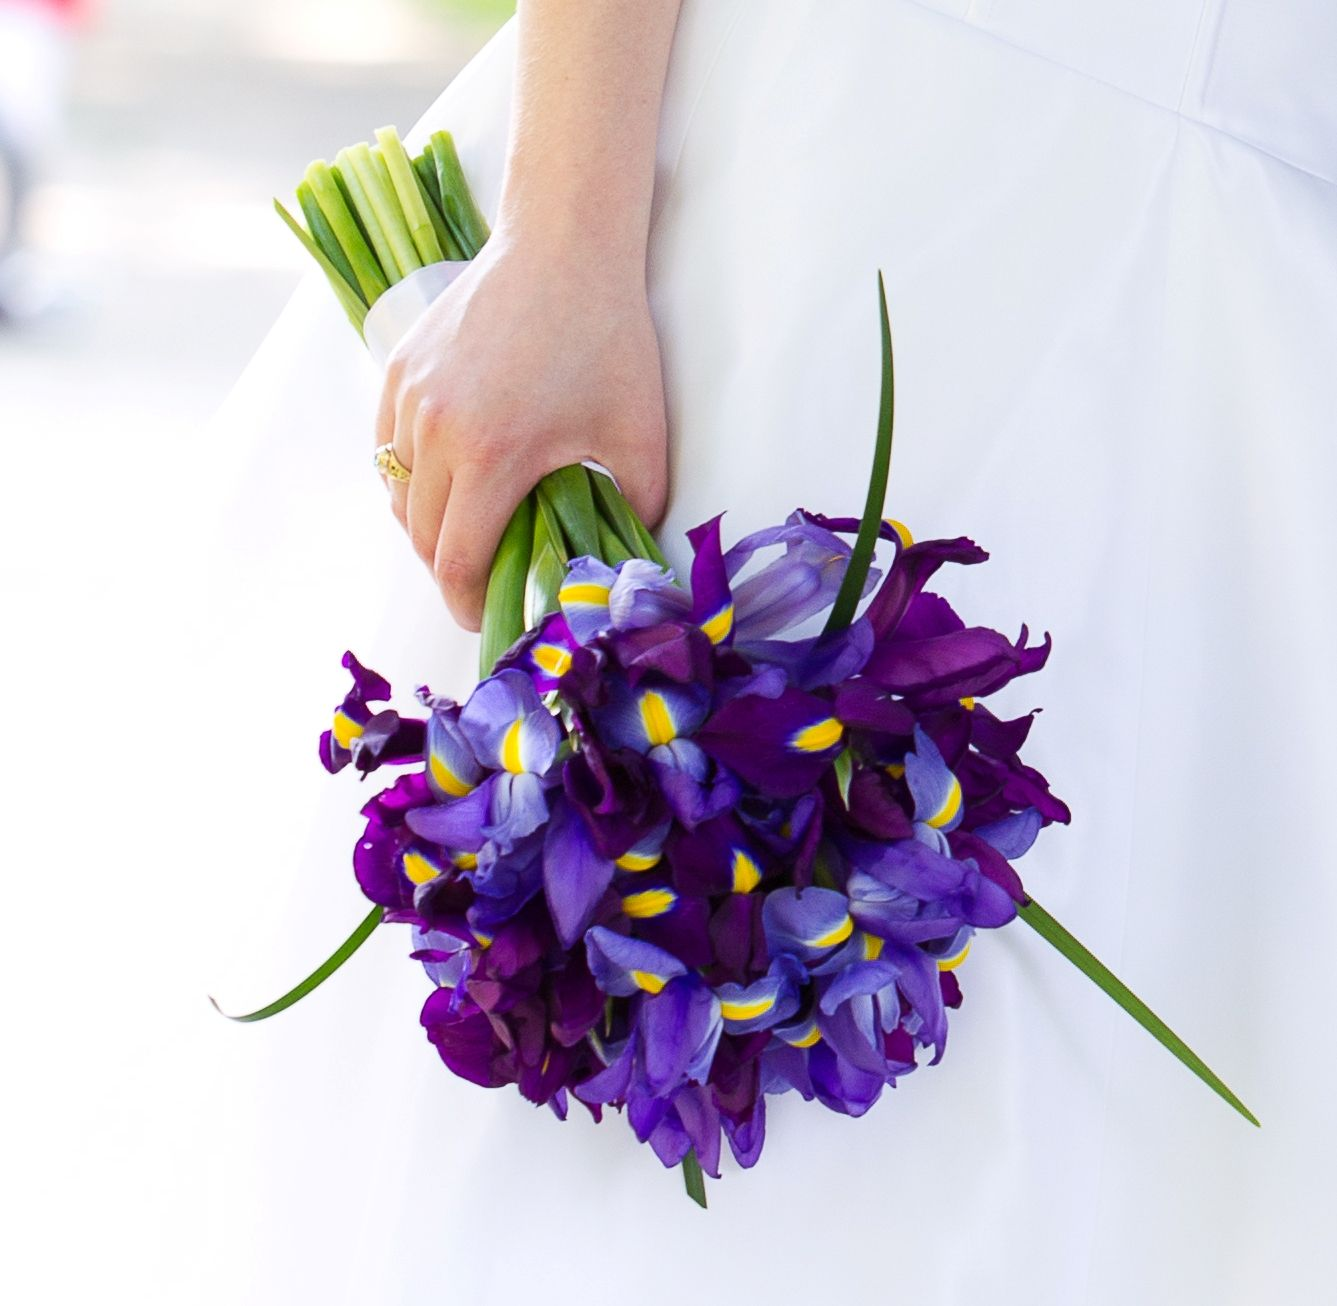 Pin By Chris Boatner On Flowers Iris Wedding Flowers Iris Wedding Iris Bouquet